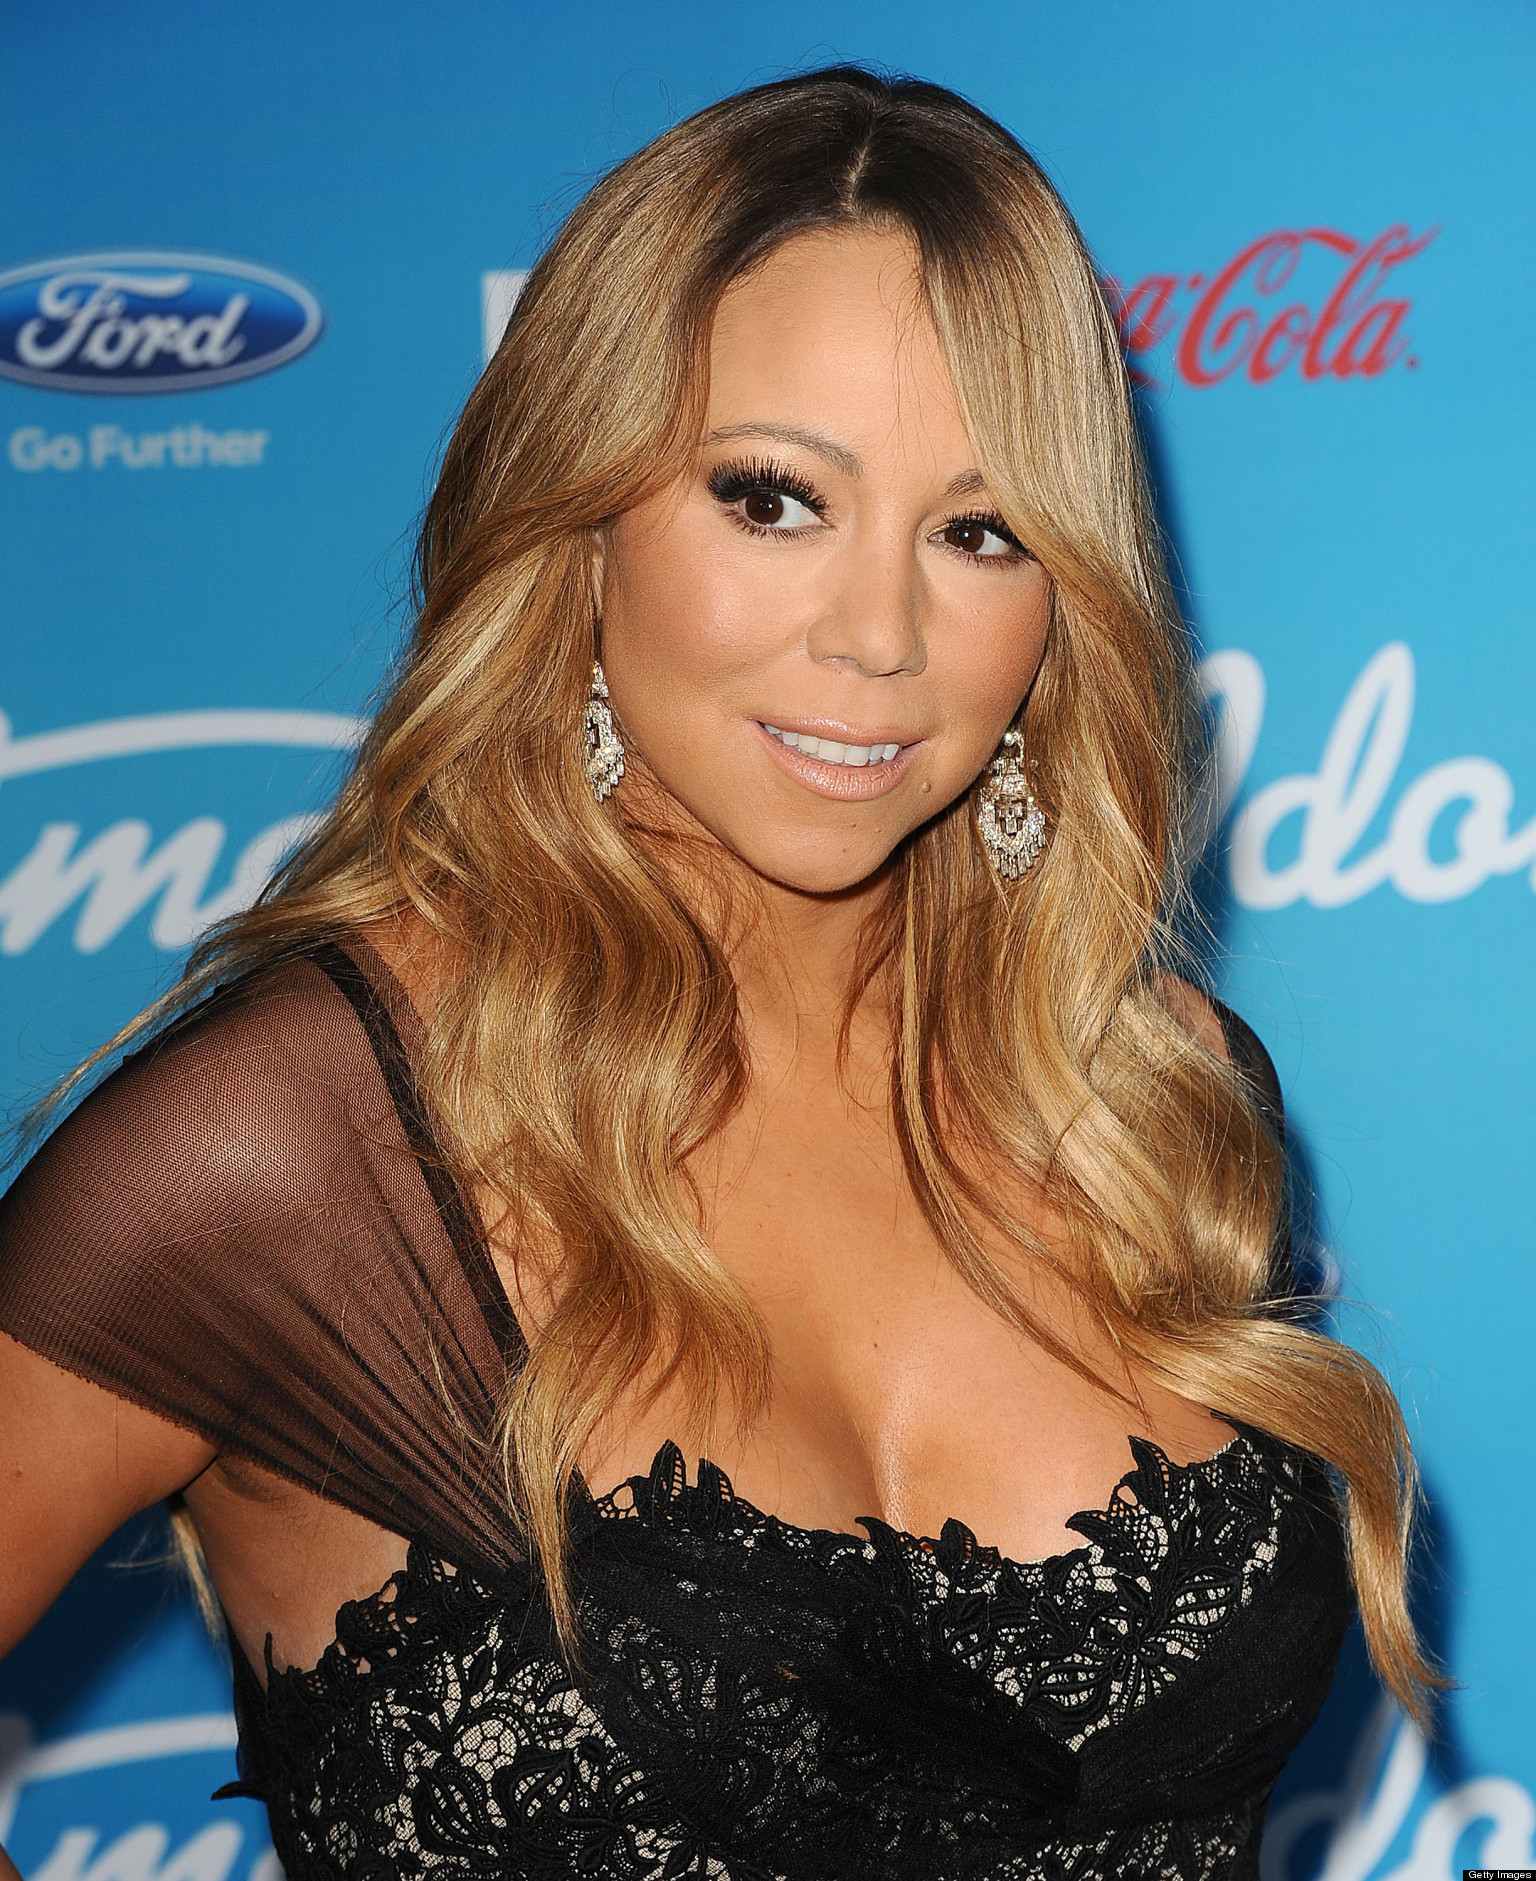 Mariah Carey: Nick Cannon: 'American Idol' Producers Are Responsible For